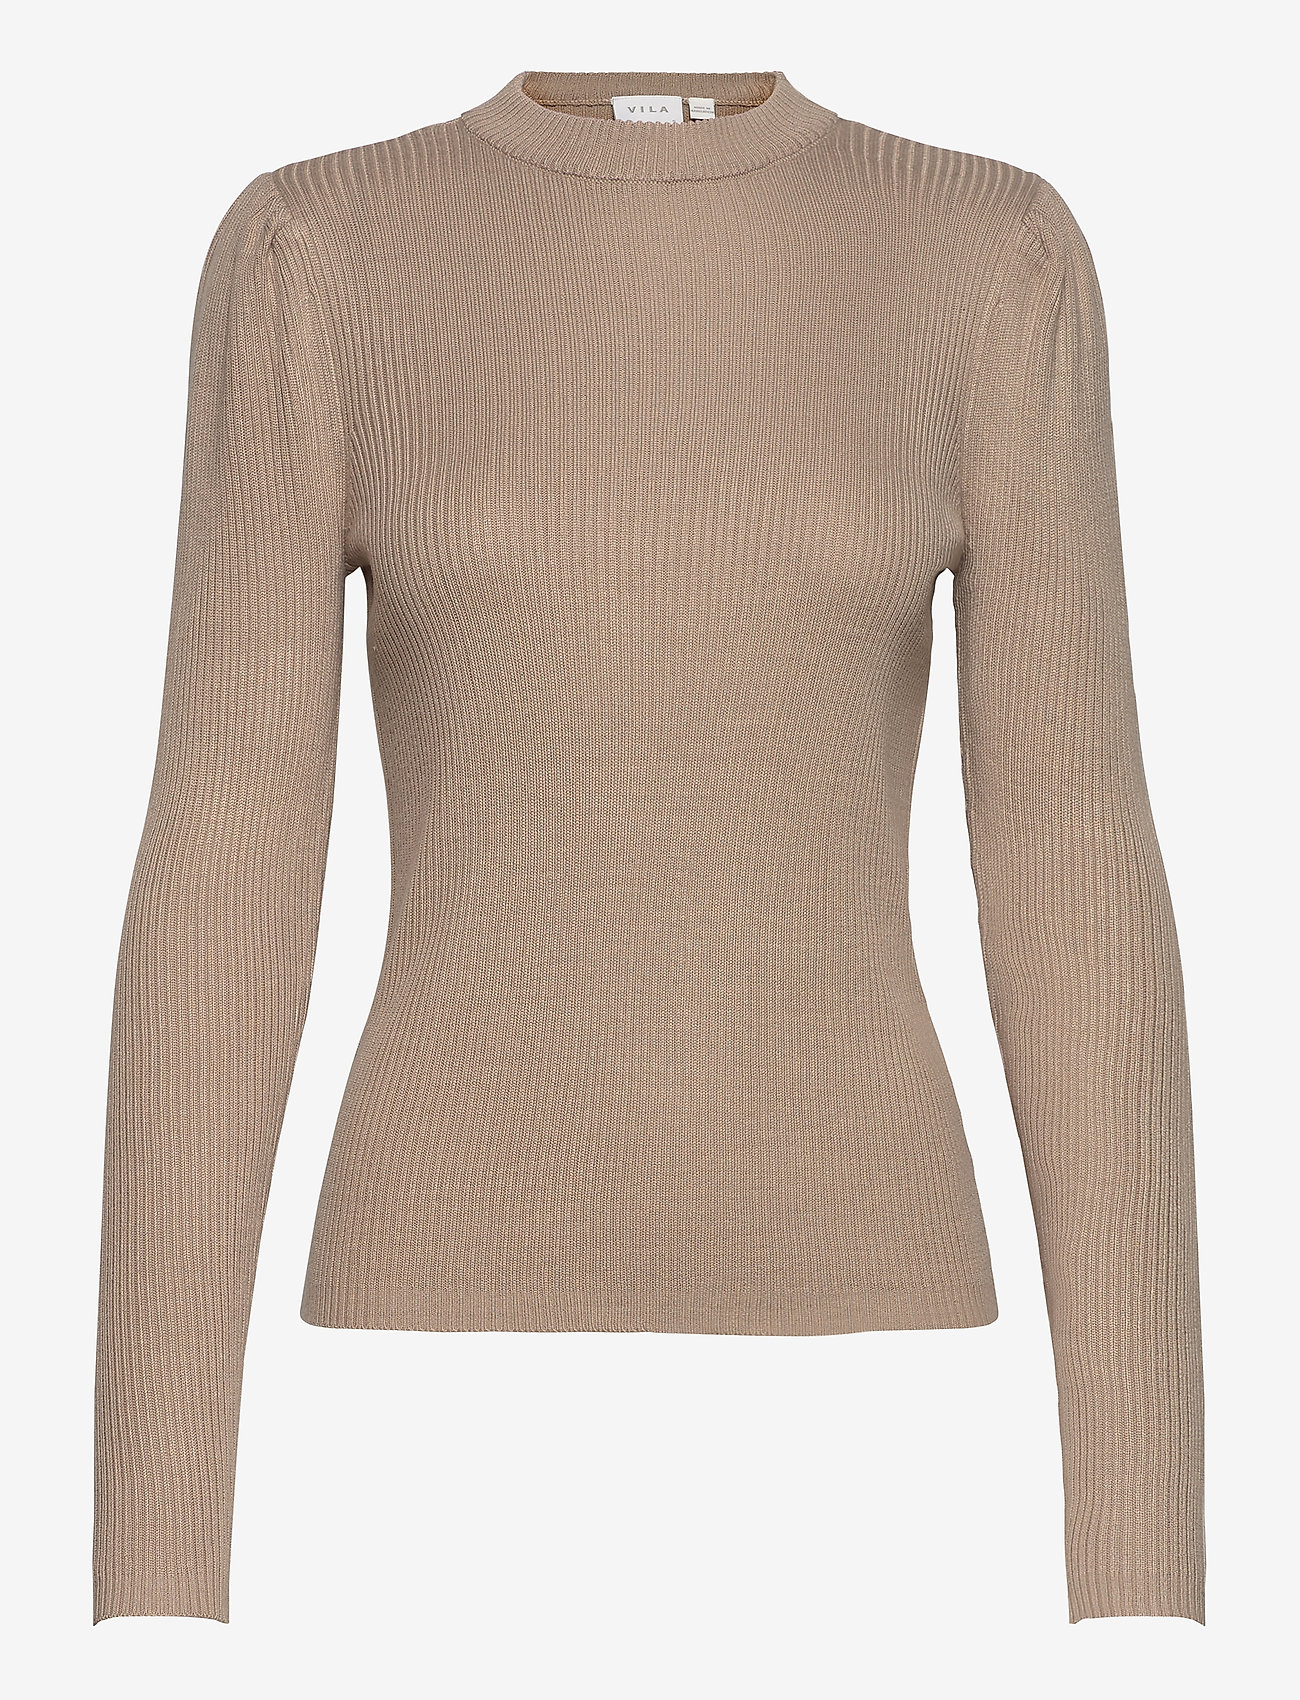 Vila - VIPOPSA KNIT CREW  NECK L/S TOP - jumpers - simply taupe - 0